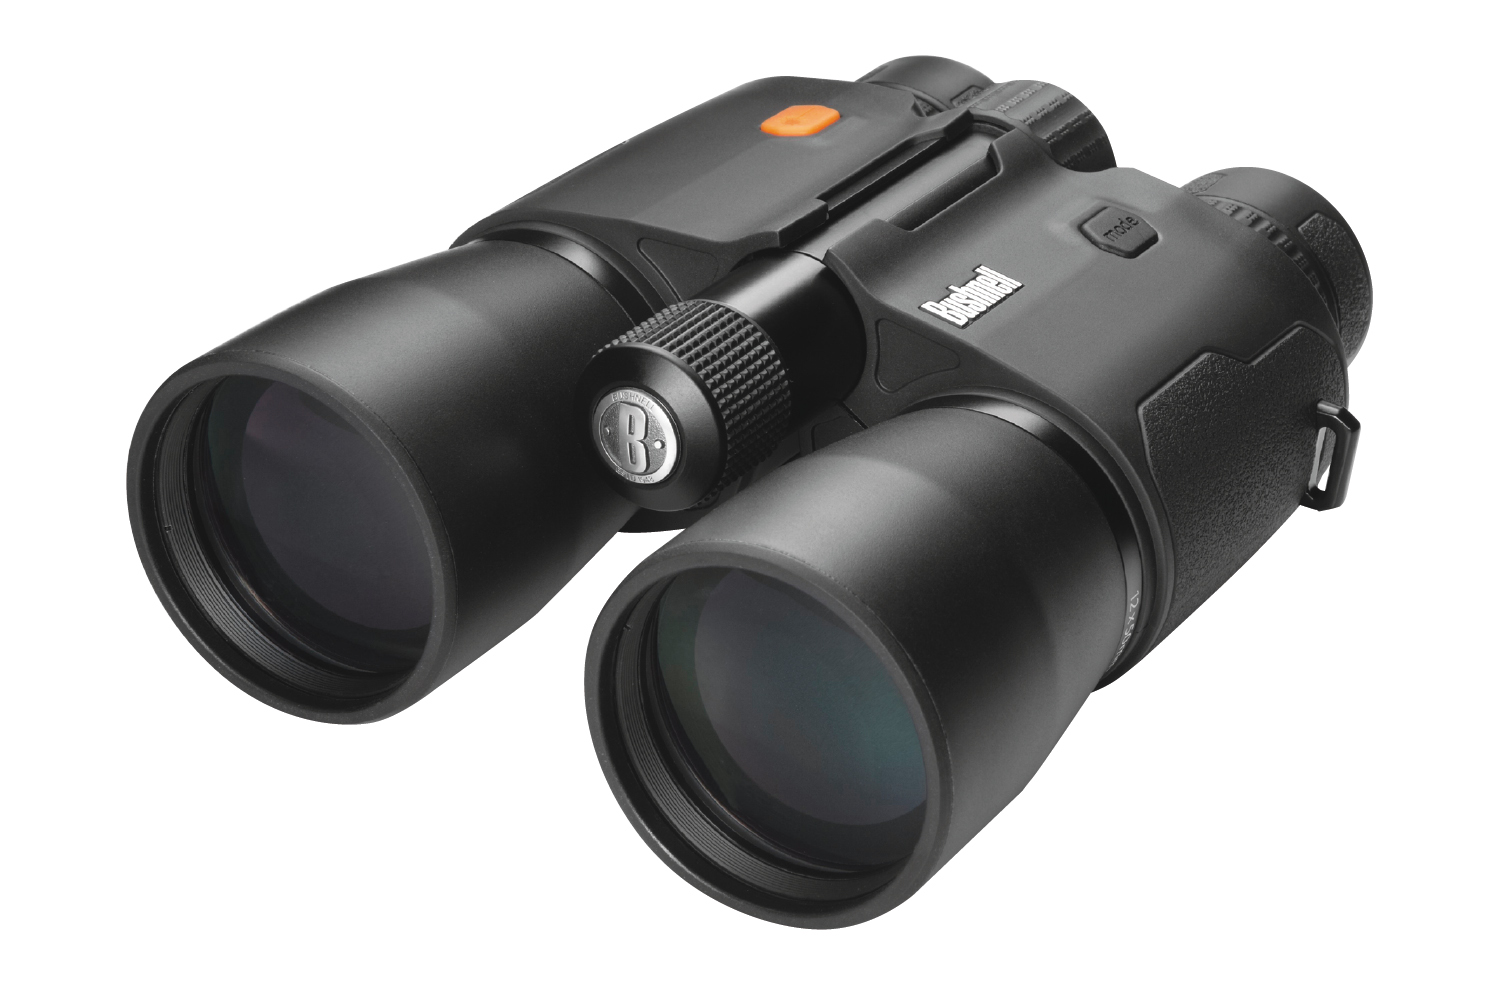 Бинокль Bushnell Fusion 1 Mile Arc 12x50 (+ Power Bank в подарок!) цена и фото